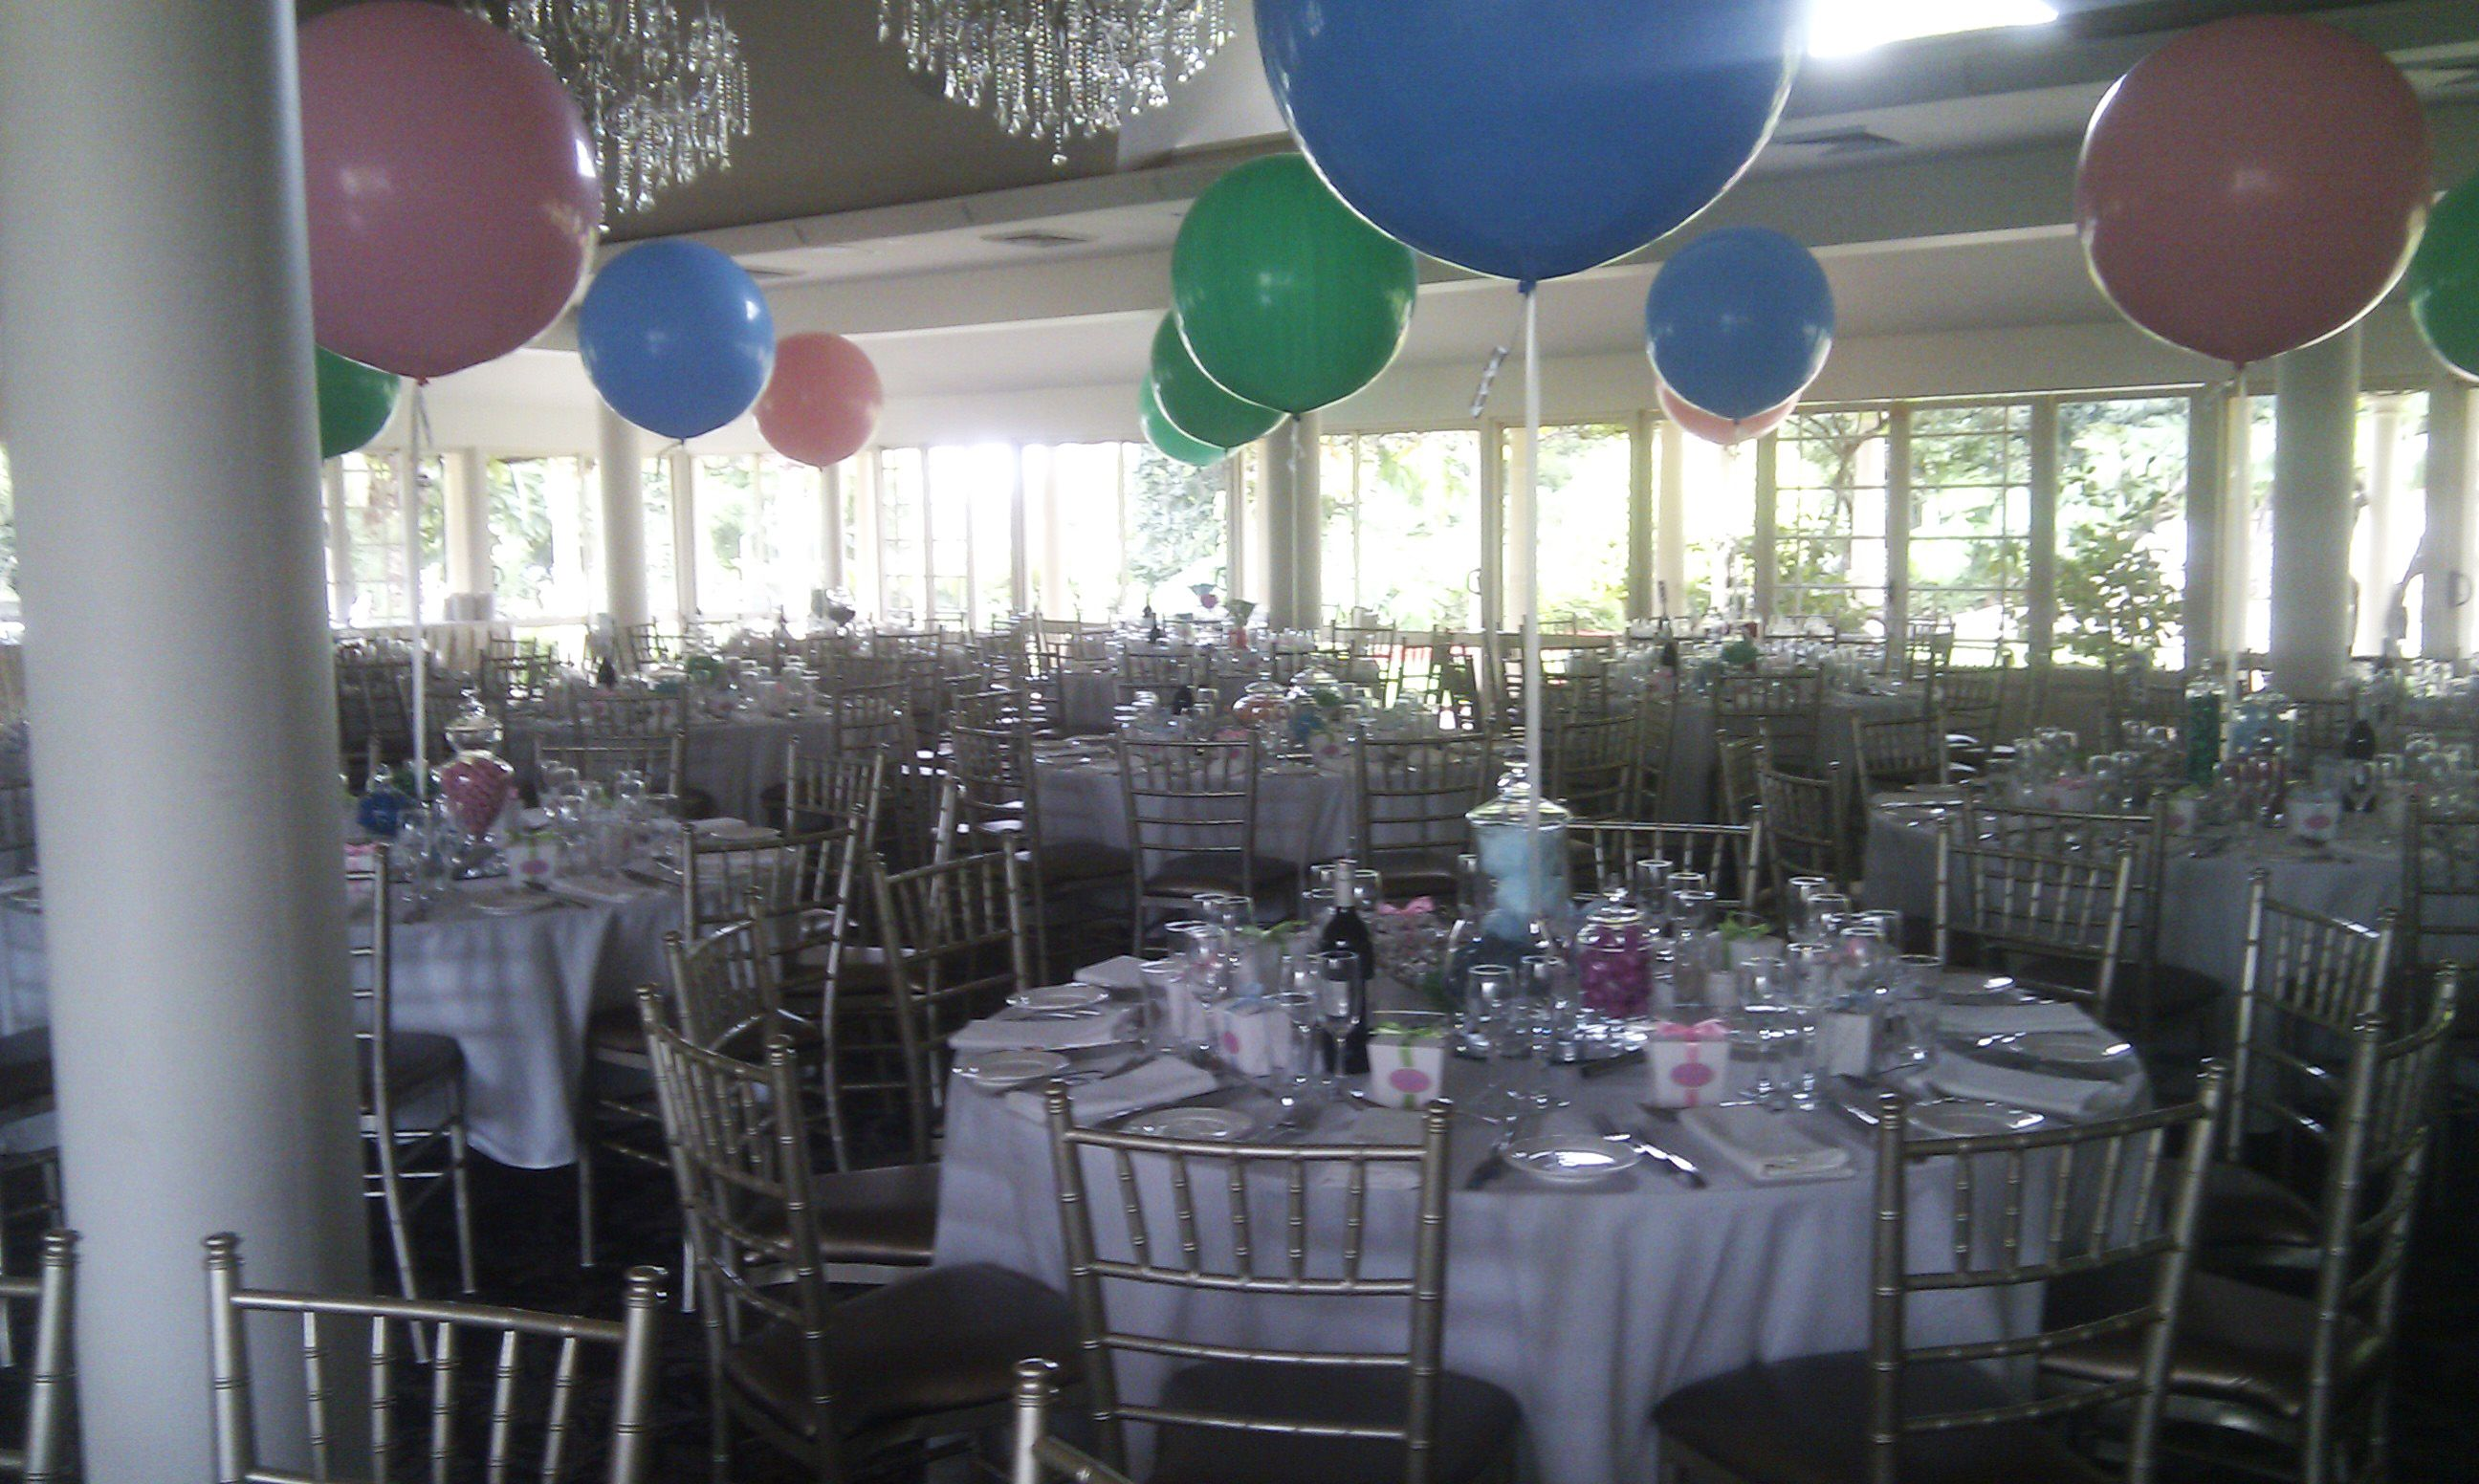 Round Function Tables 3ft Round Latex Balloons As Table Arrangements For A Corporate